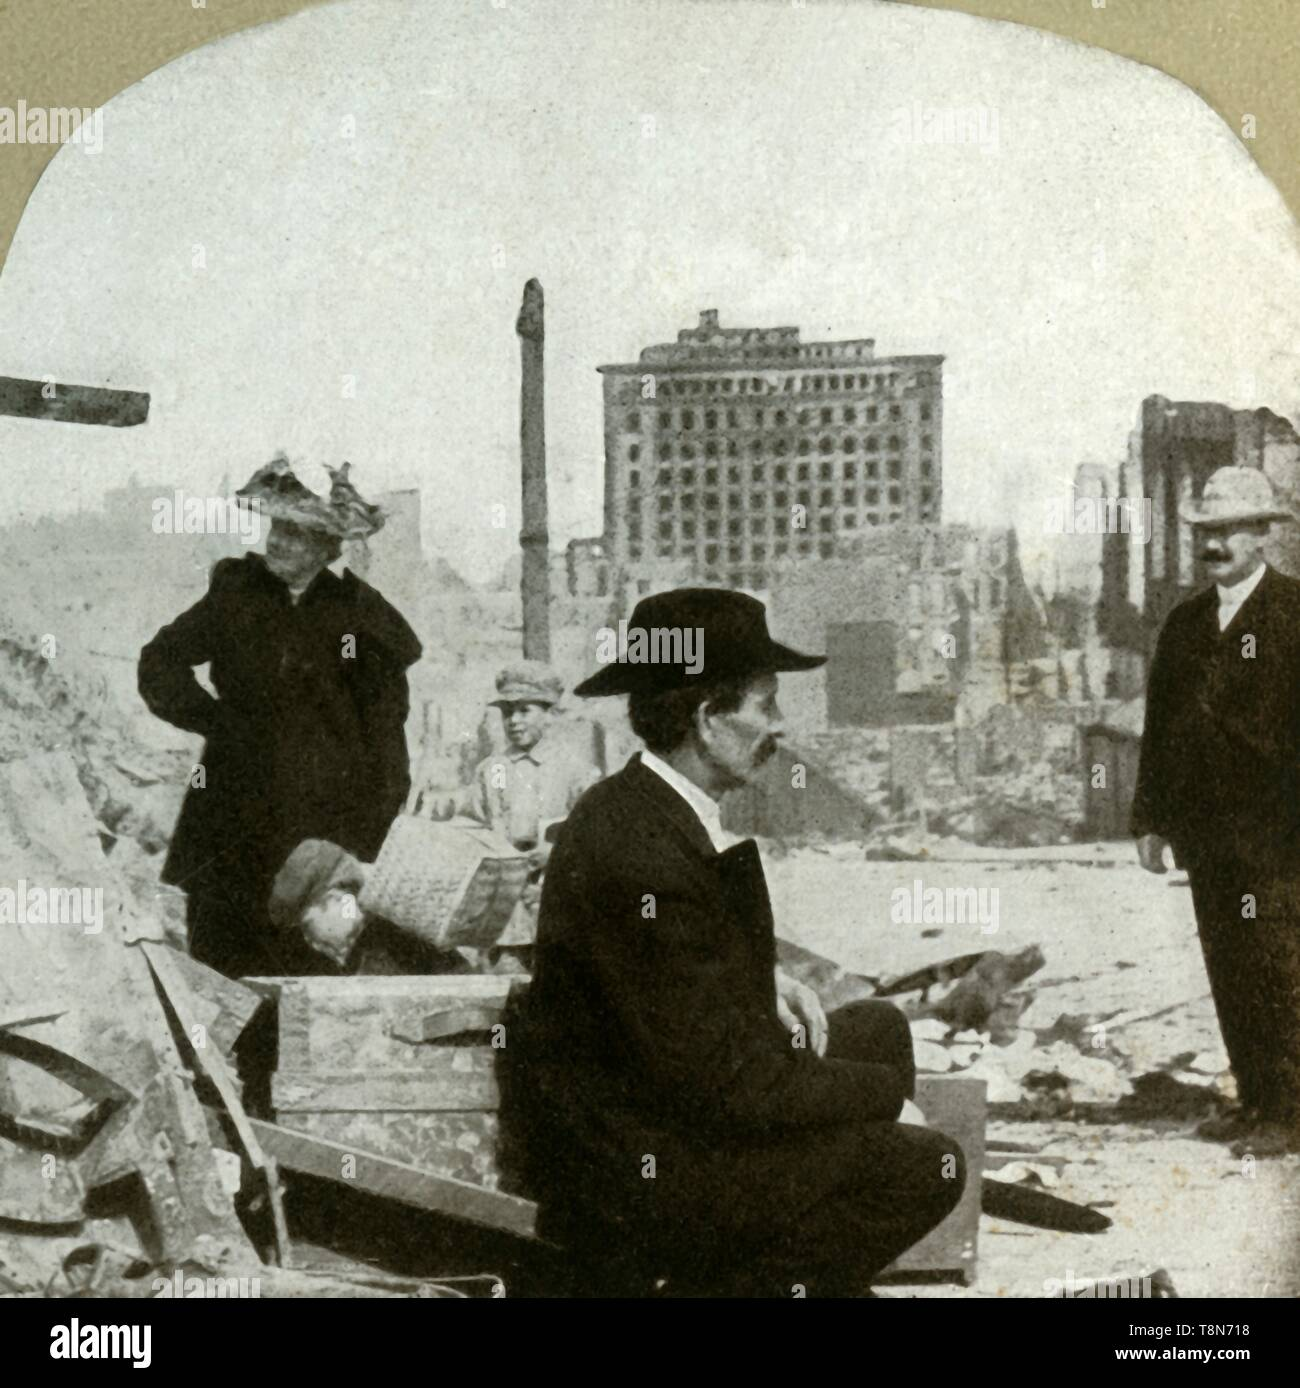 'Looking east from corner Pine and Stockton, showing the ruins of the Mills Building', 1906. The Mills Building, completed in 1892, survived the earthquake and was restored. A major earthquake struck San Francisco, California, USA, on 18 April 1906. As well as damaging many buildings, the quake ruptured gas lines, causing fires to break out. As water mains had also been damaged, firefighters had little chance of fighting the blaze, which went on to destroy some 25,000 buildings. In all, the earthquake and fires killed an estimated 3000 people - the most to lose their lives in a natural disaste - Stock Image